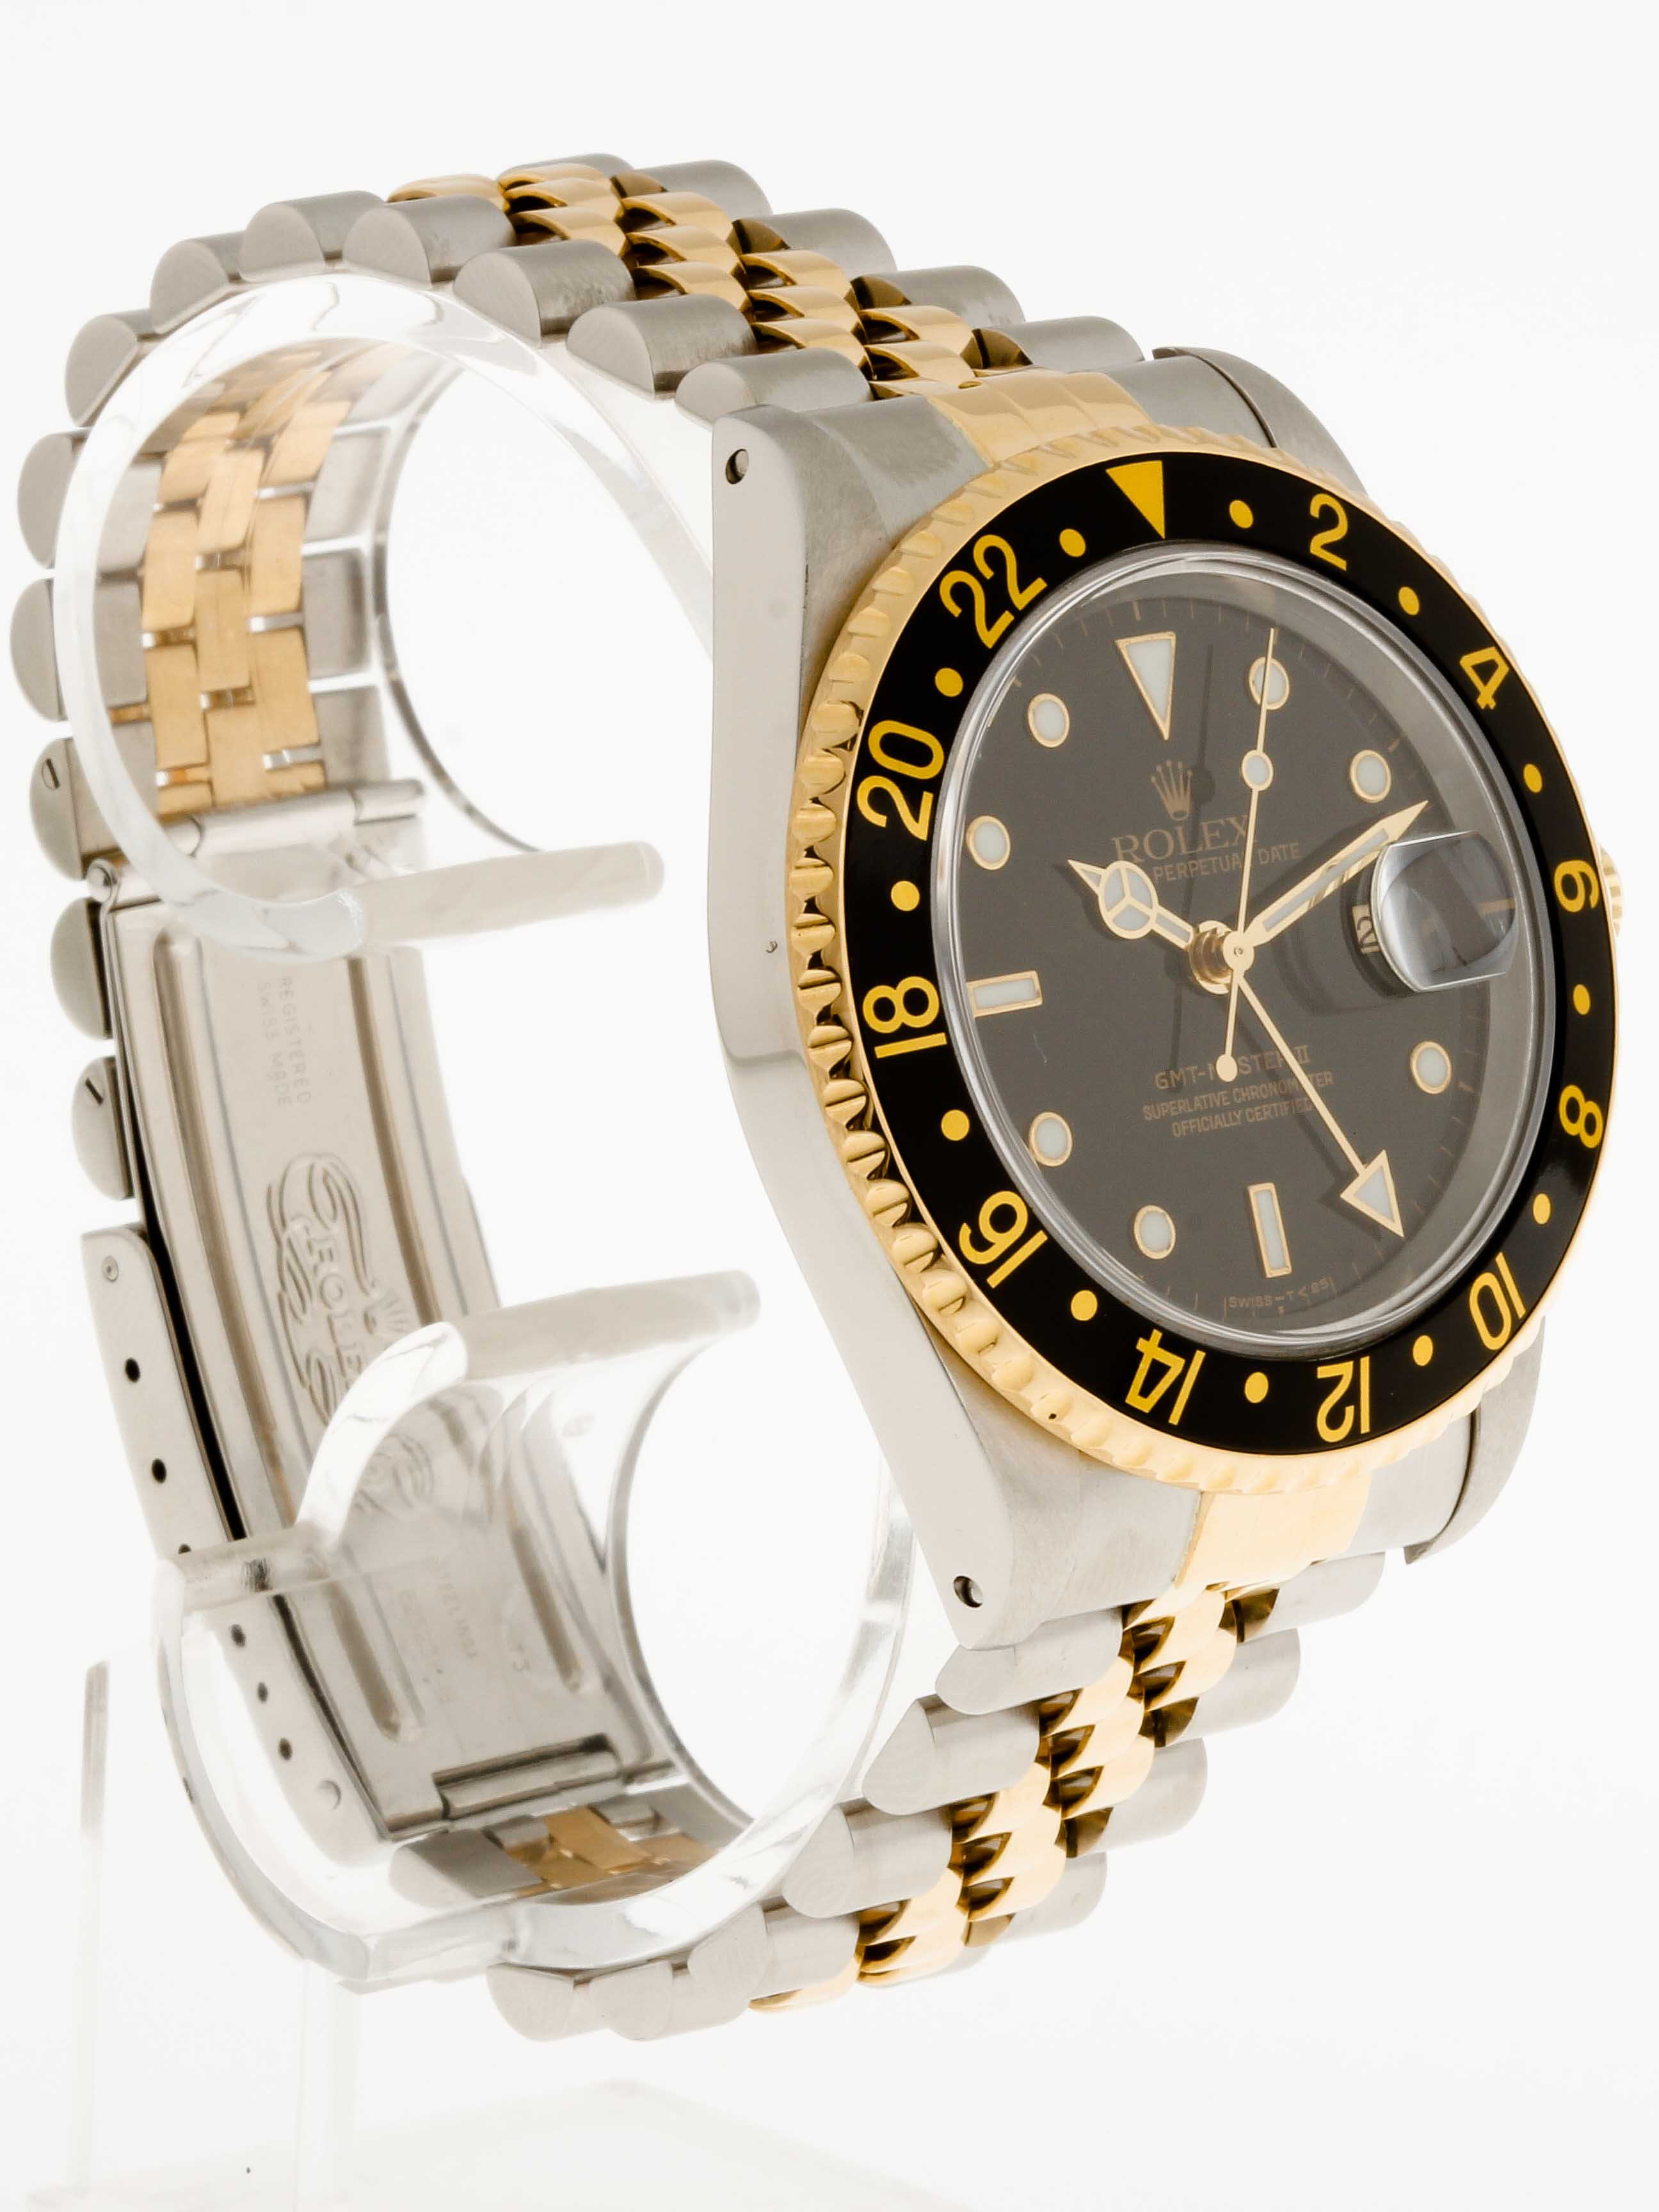 rolex gmt master ii stahl gold original box. Black Bedroom Furniture Sets. Home Design Ideas